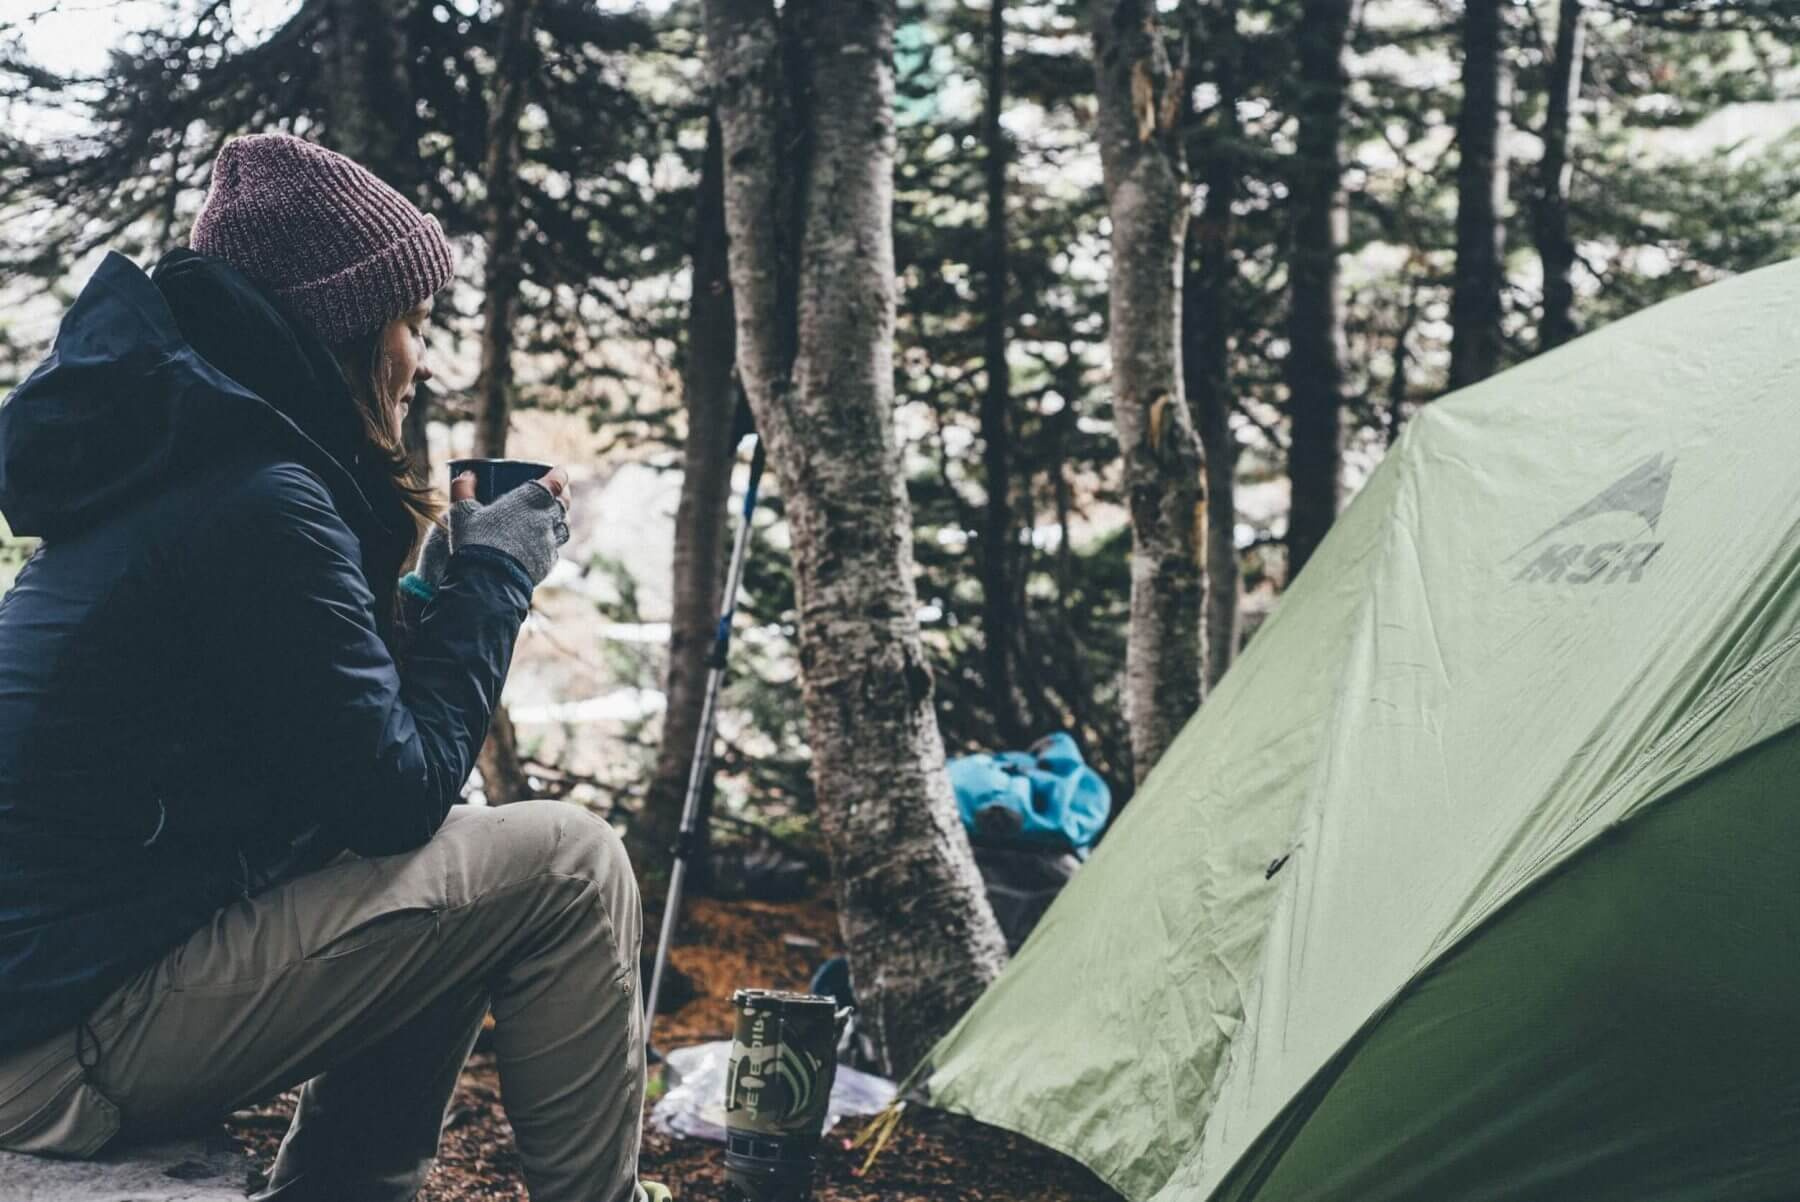 Camping Equipment You Will Want to Highly Consider